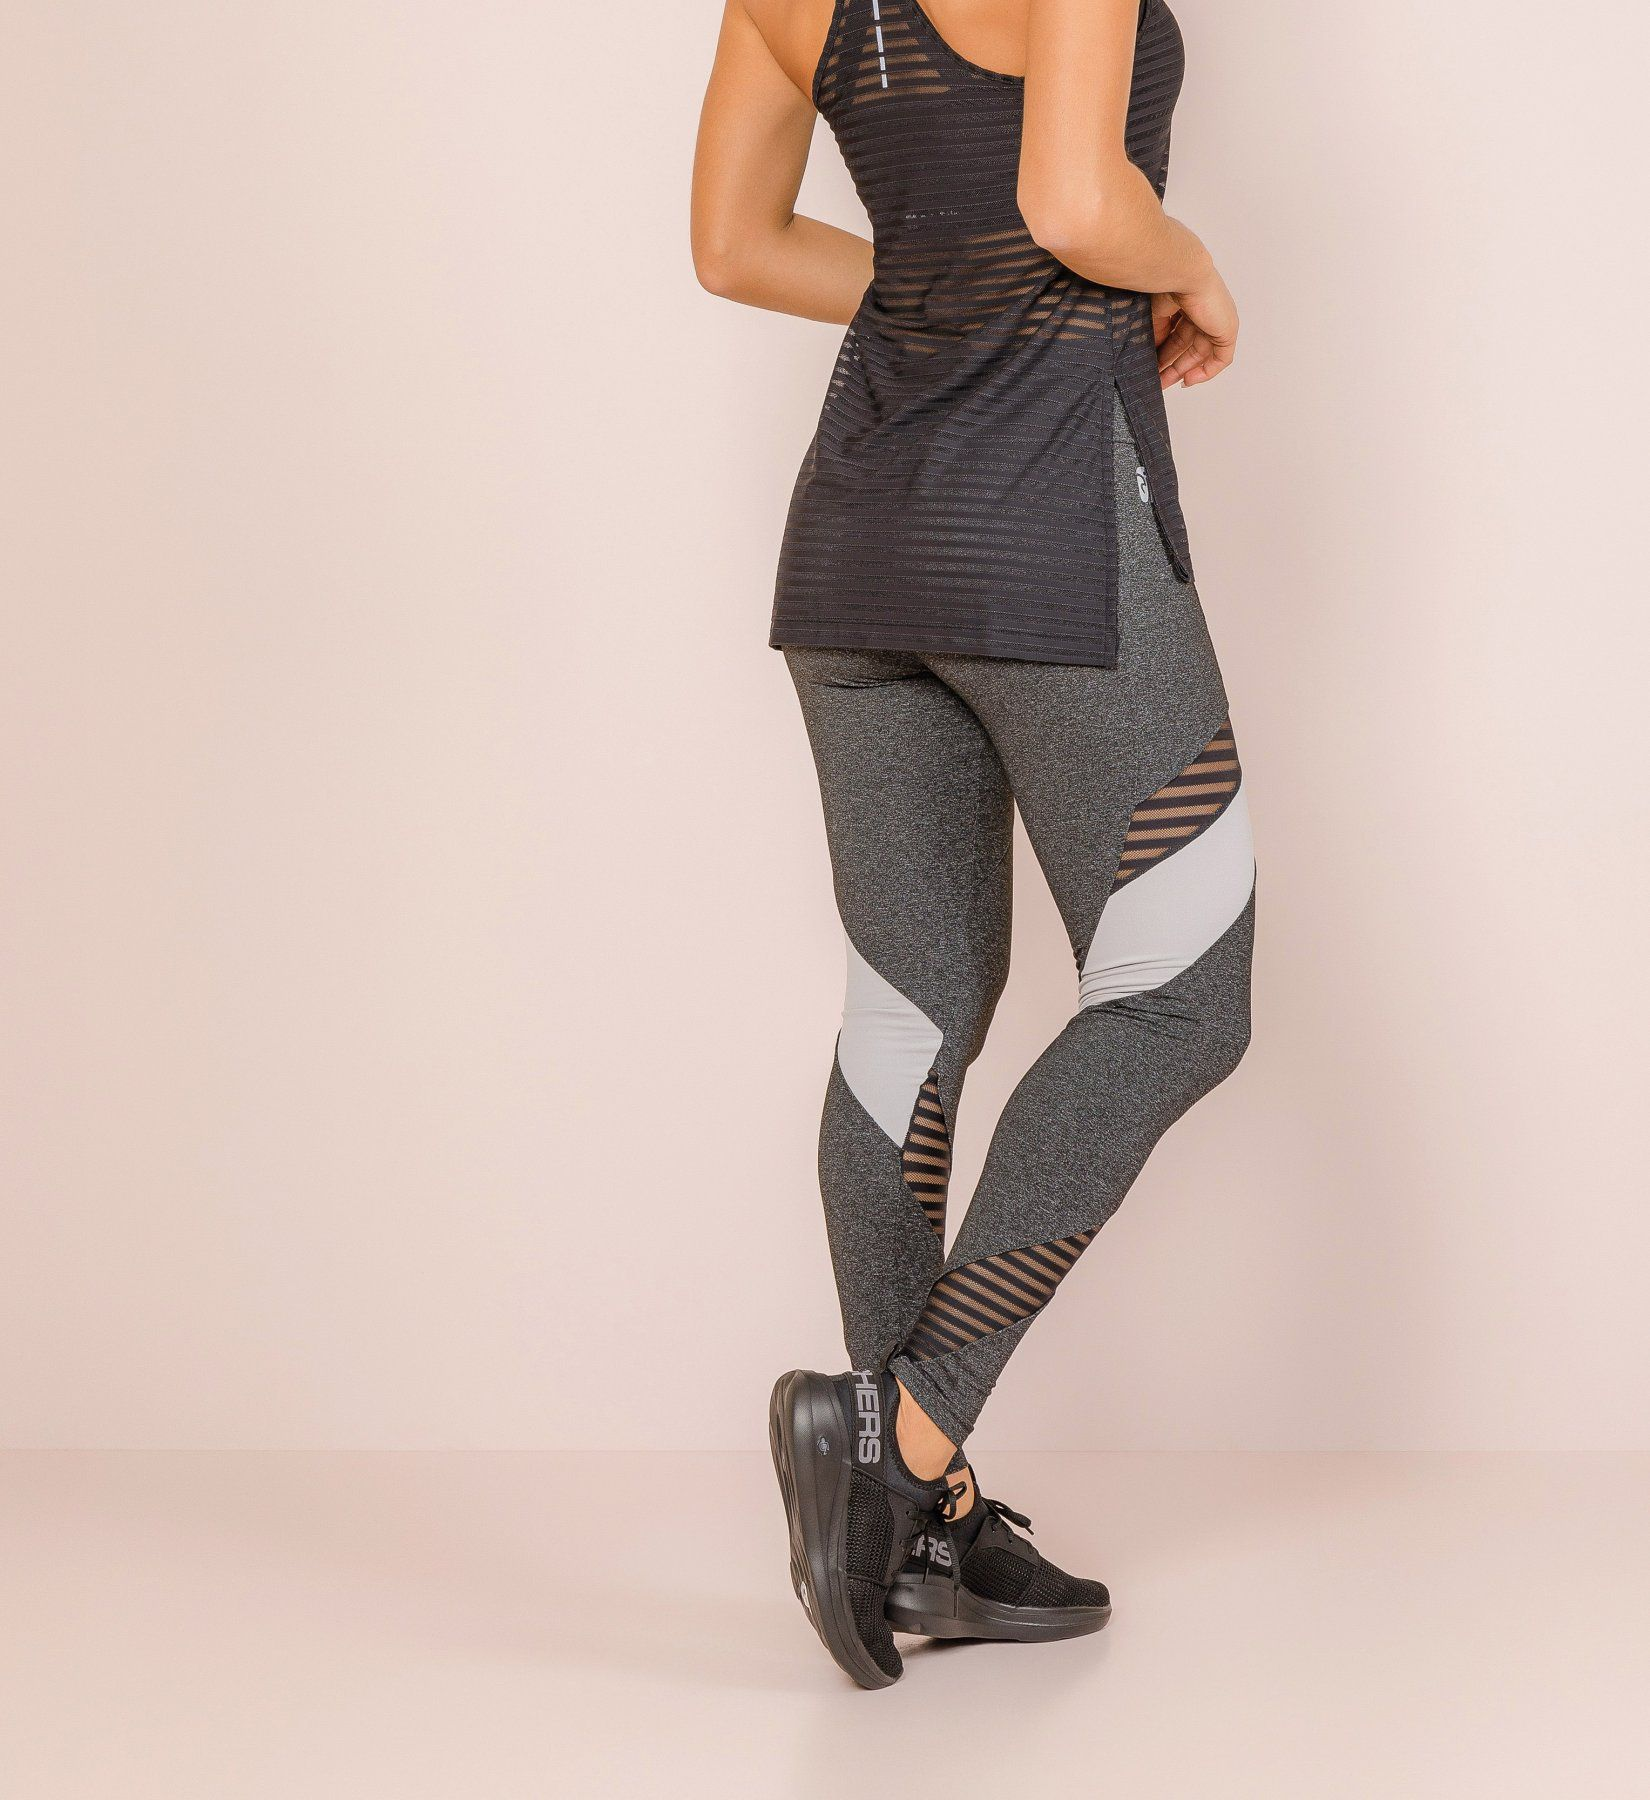 Legging Supplex com Equinox